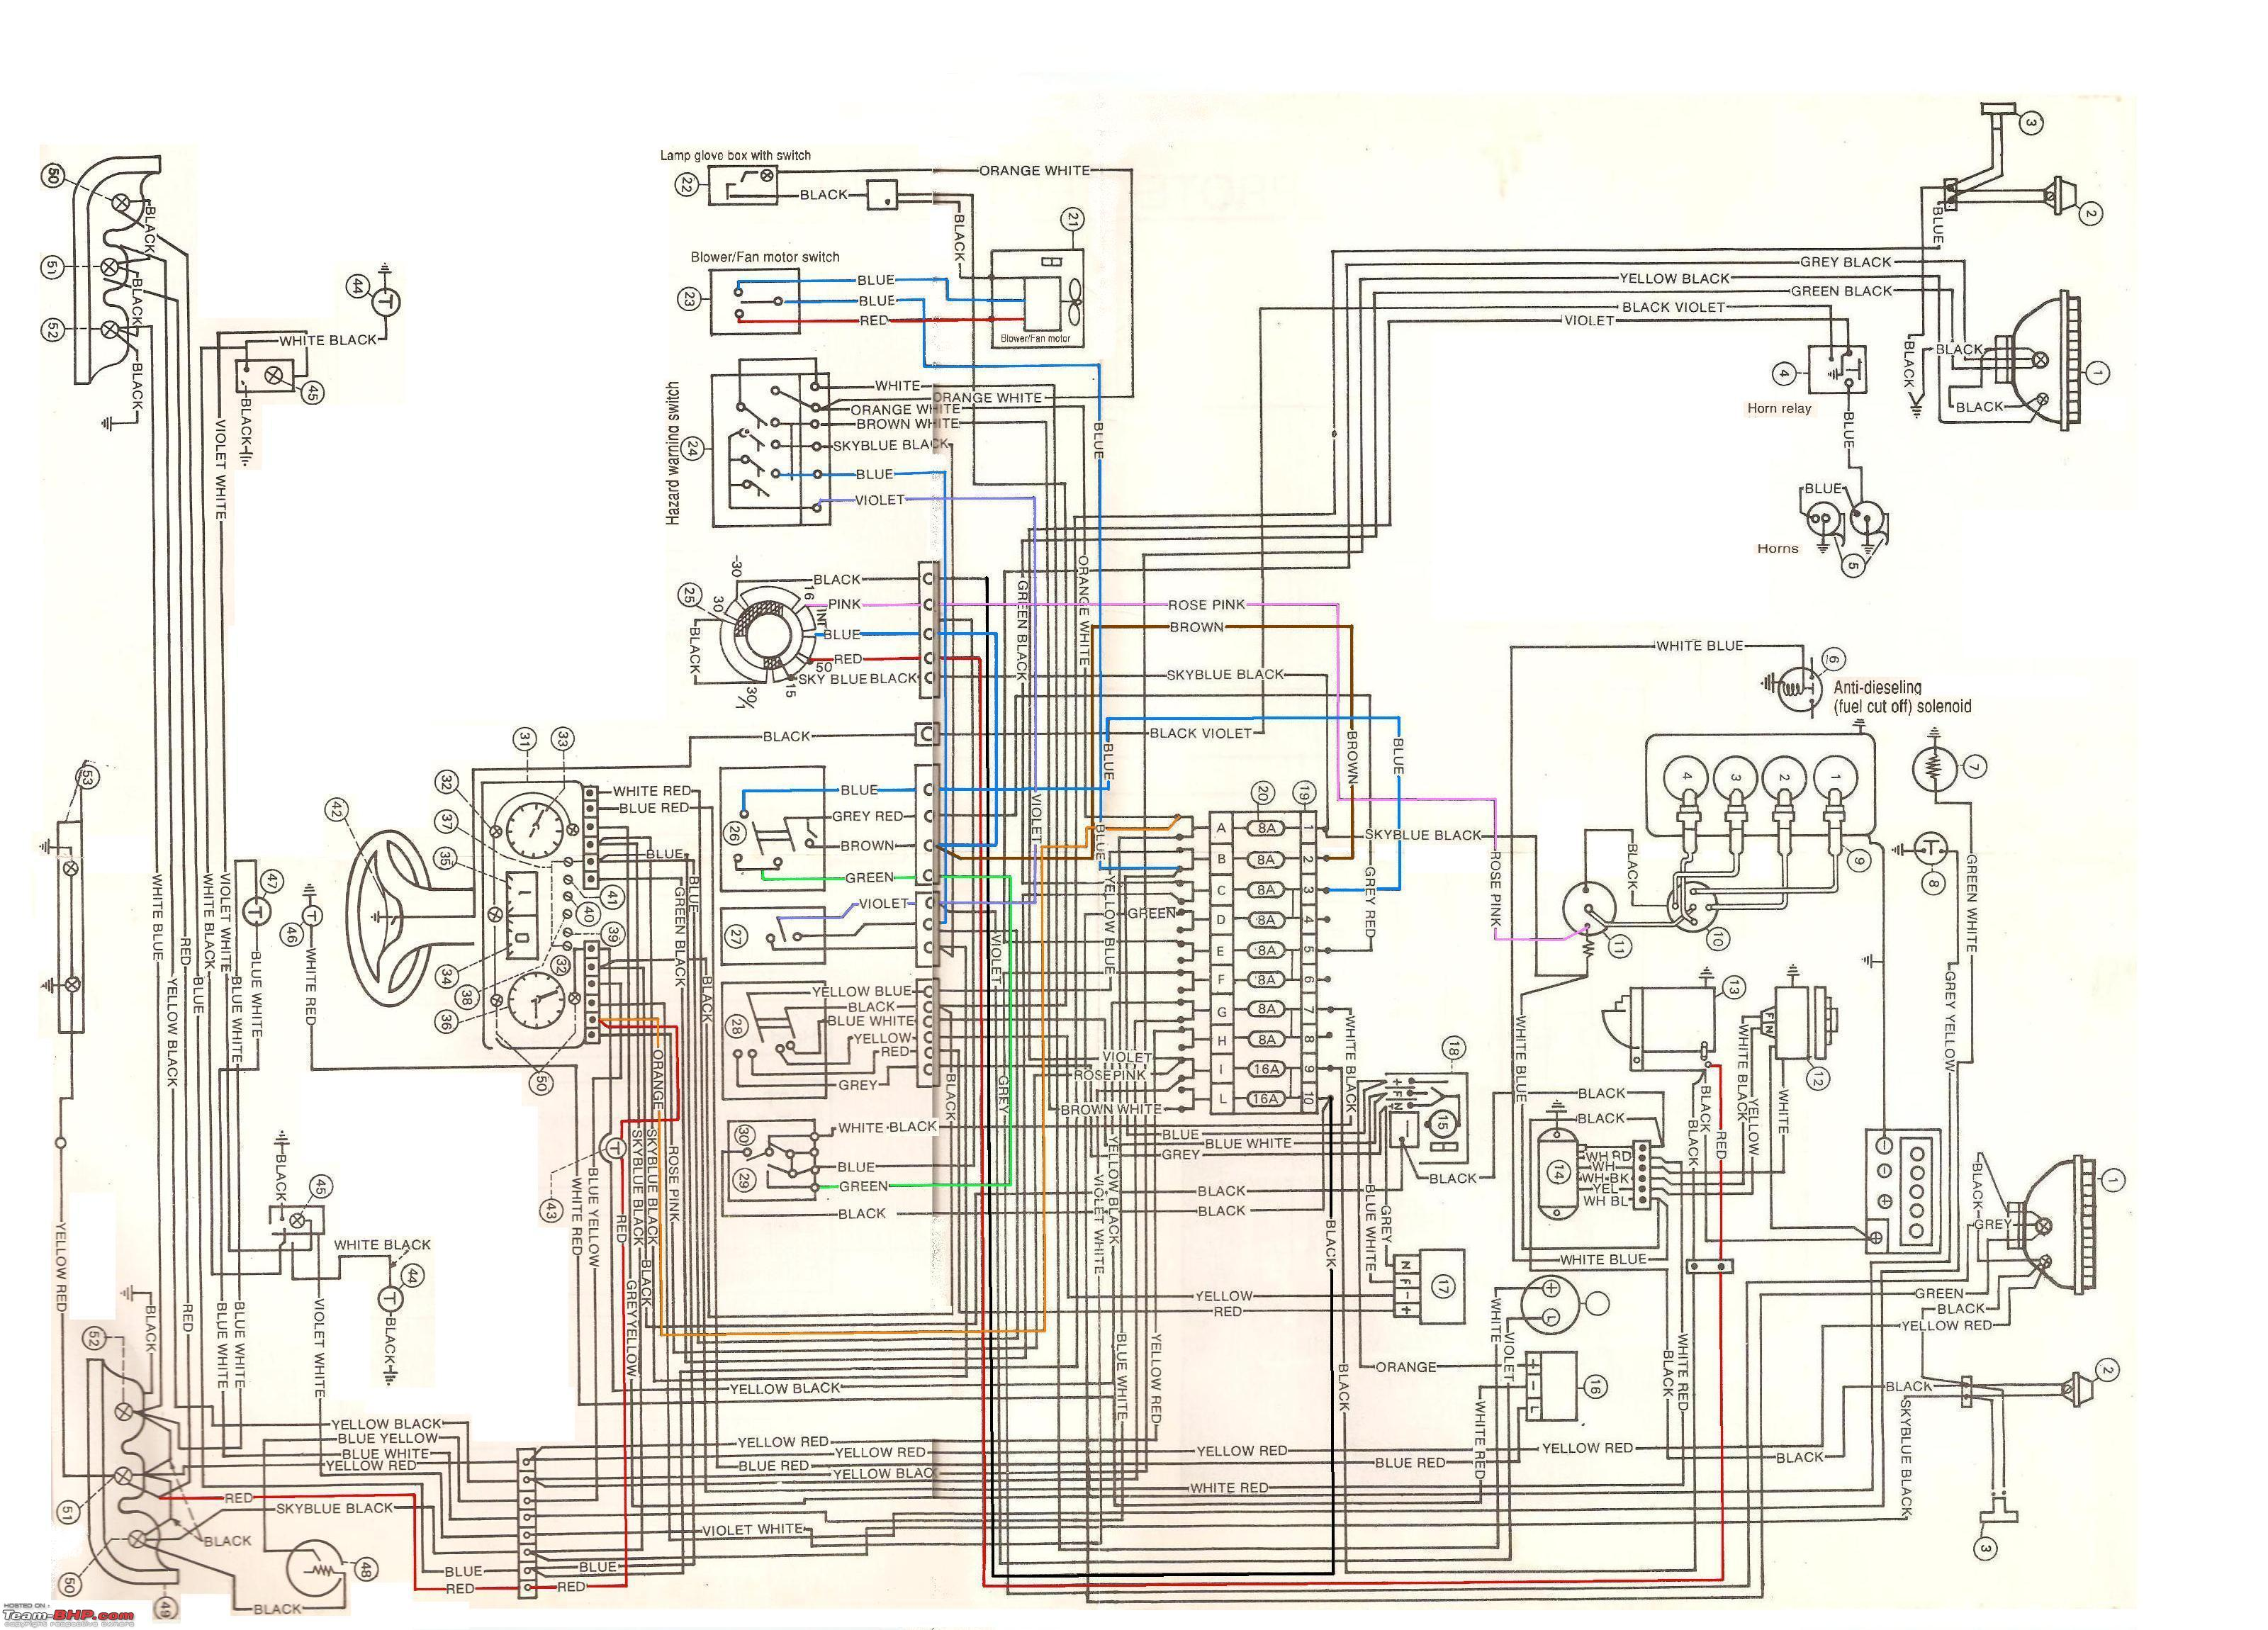 Maruti+800+Wiring+Diagram suzuki sx4 wiring diagram dolgular com ventline range hood wiring diagram at readyjetset.co